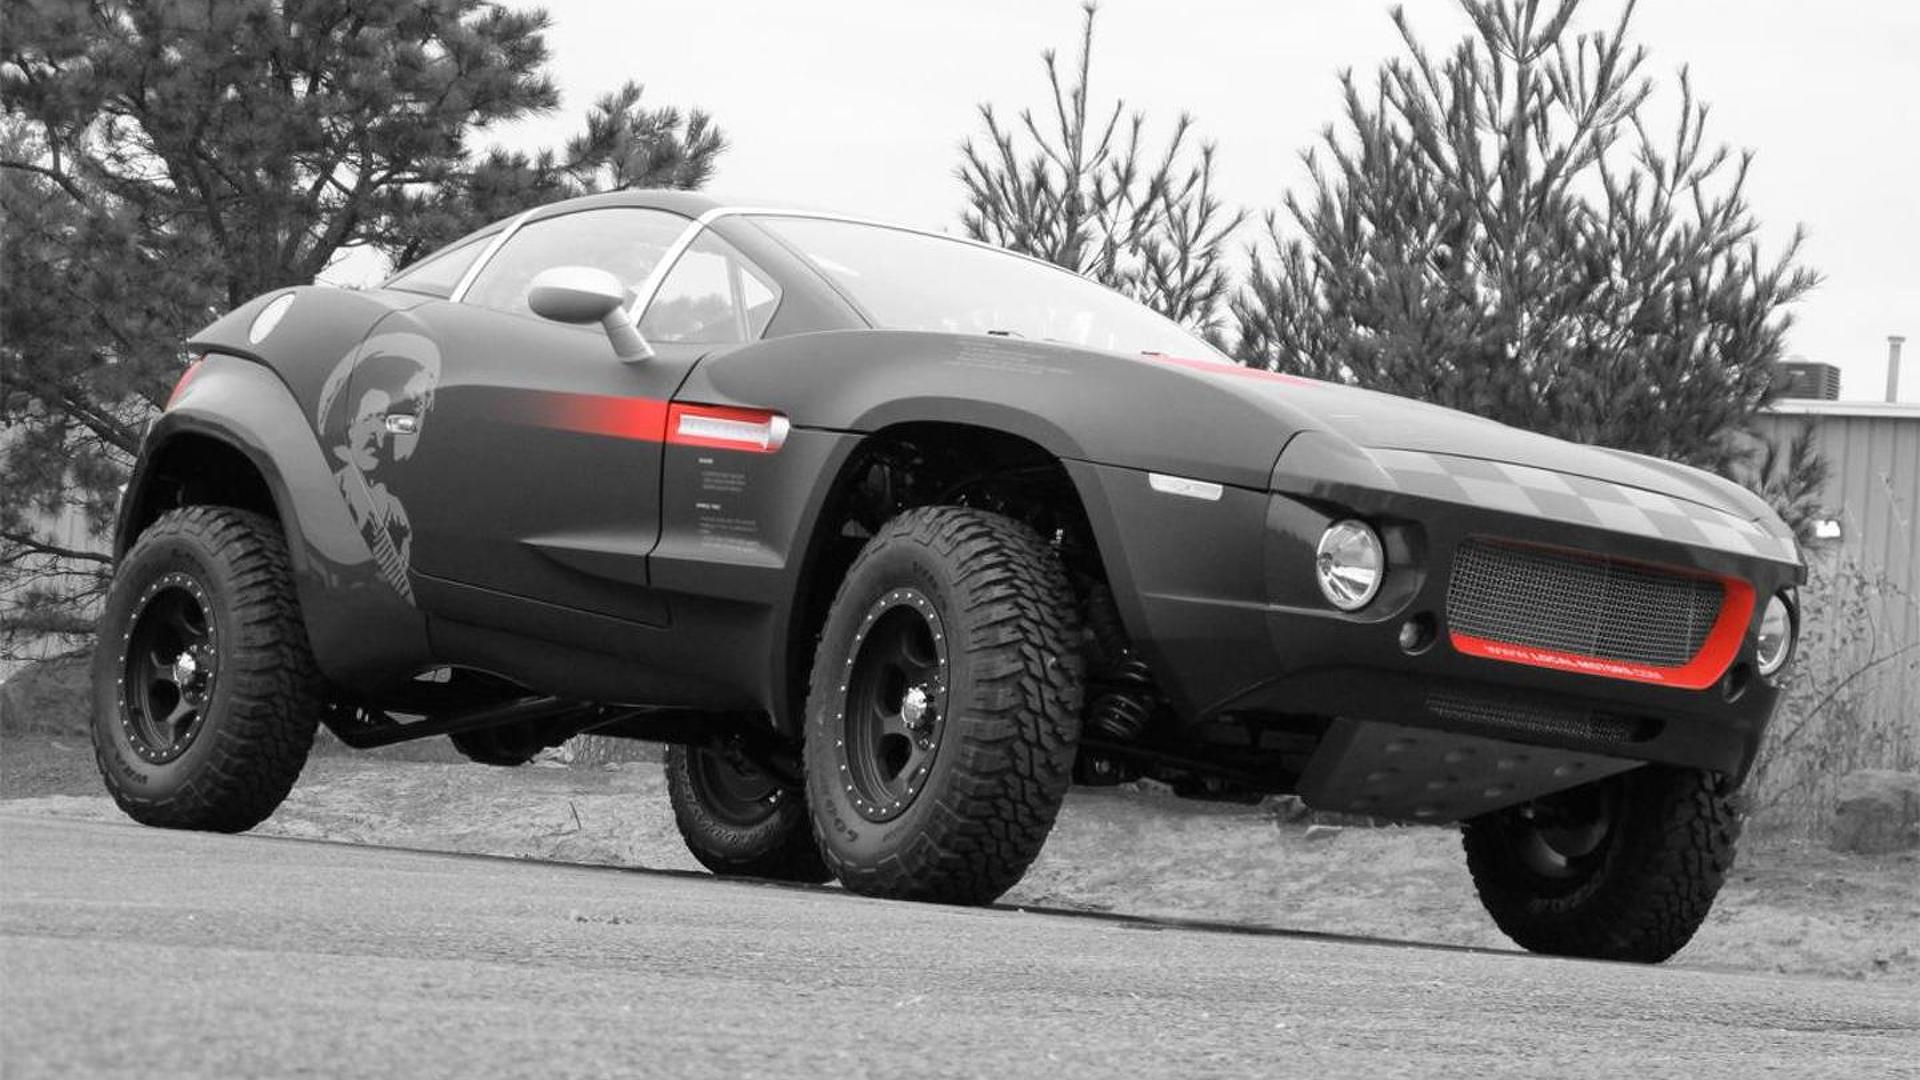 Production Rally Fighter set to debut at SEMA [video]